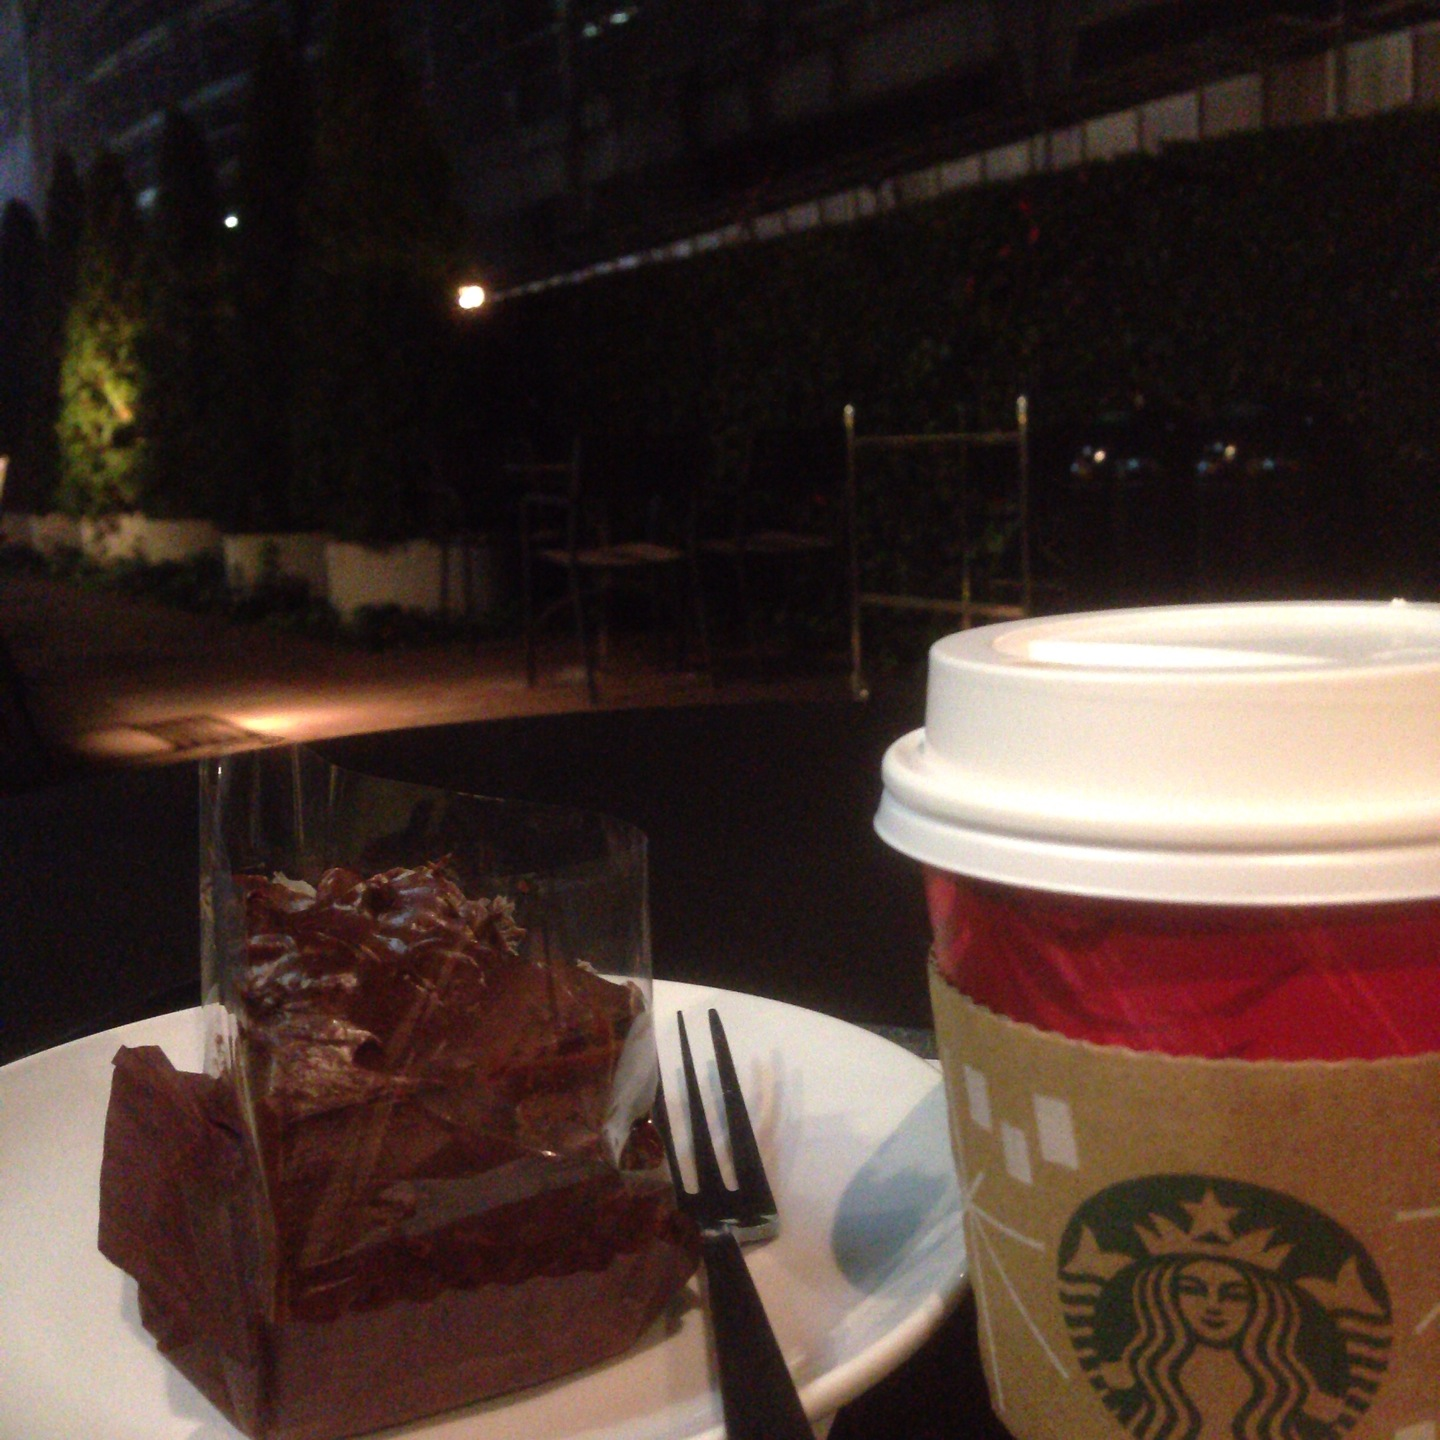 [CheckedIn] at Starbucks Coffee 新宿サザンテラス店 #foursquare